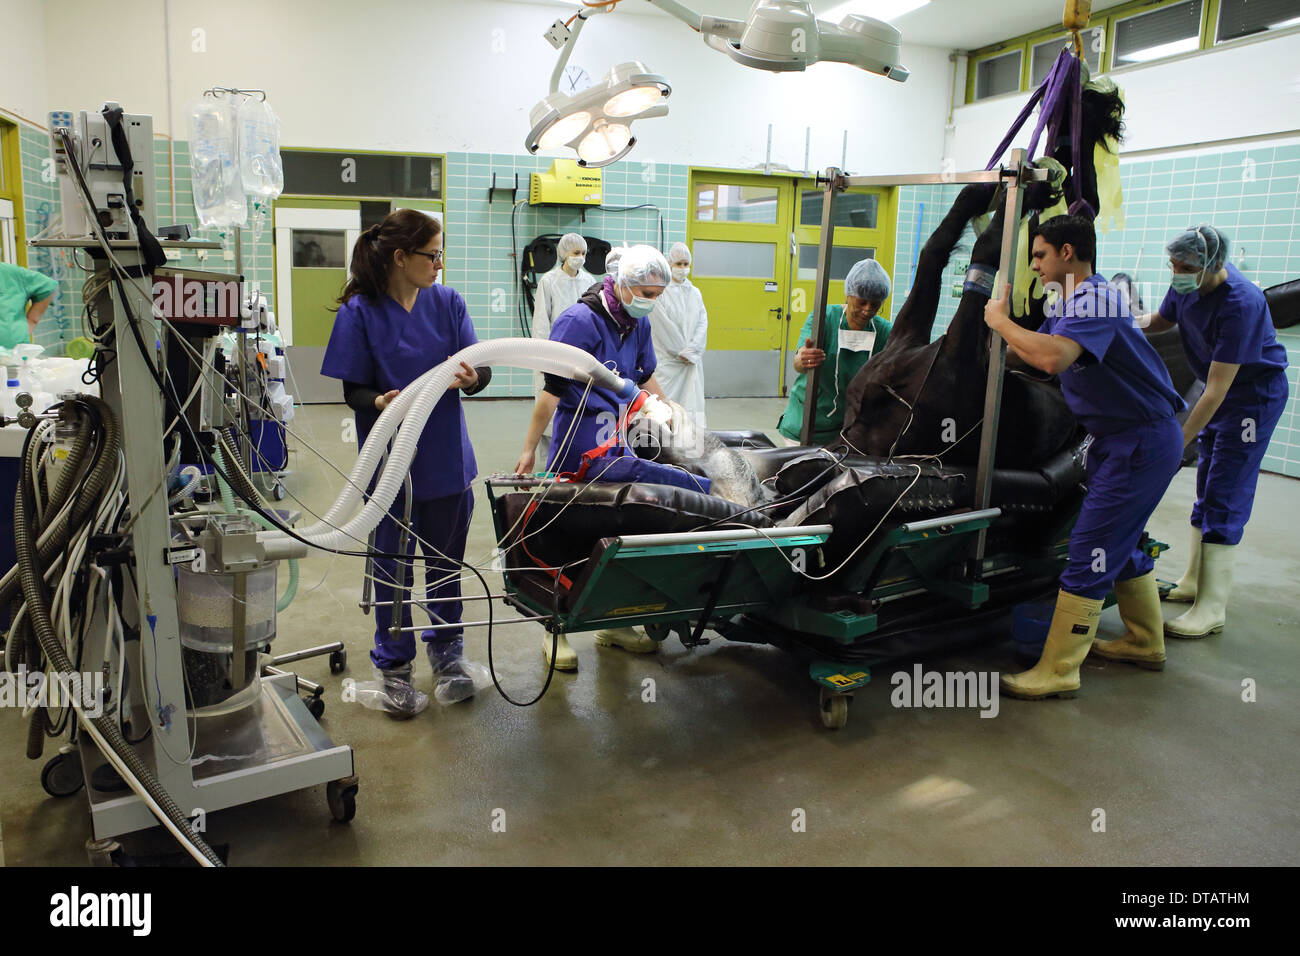 Berlin, Germany, a horse is anesthetized intubated before surgery - Stock Image